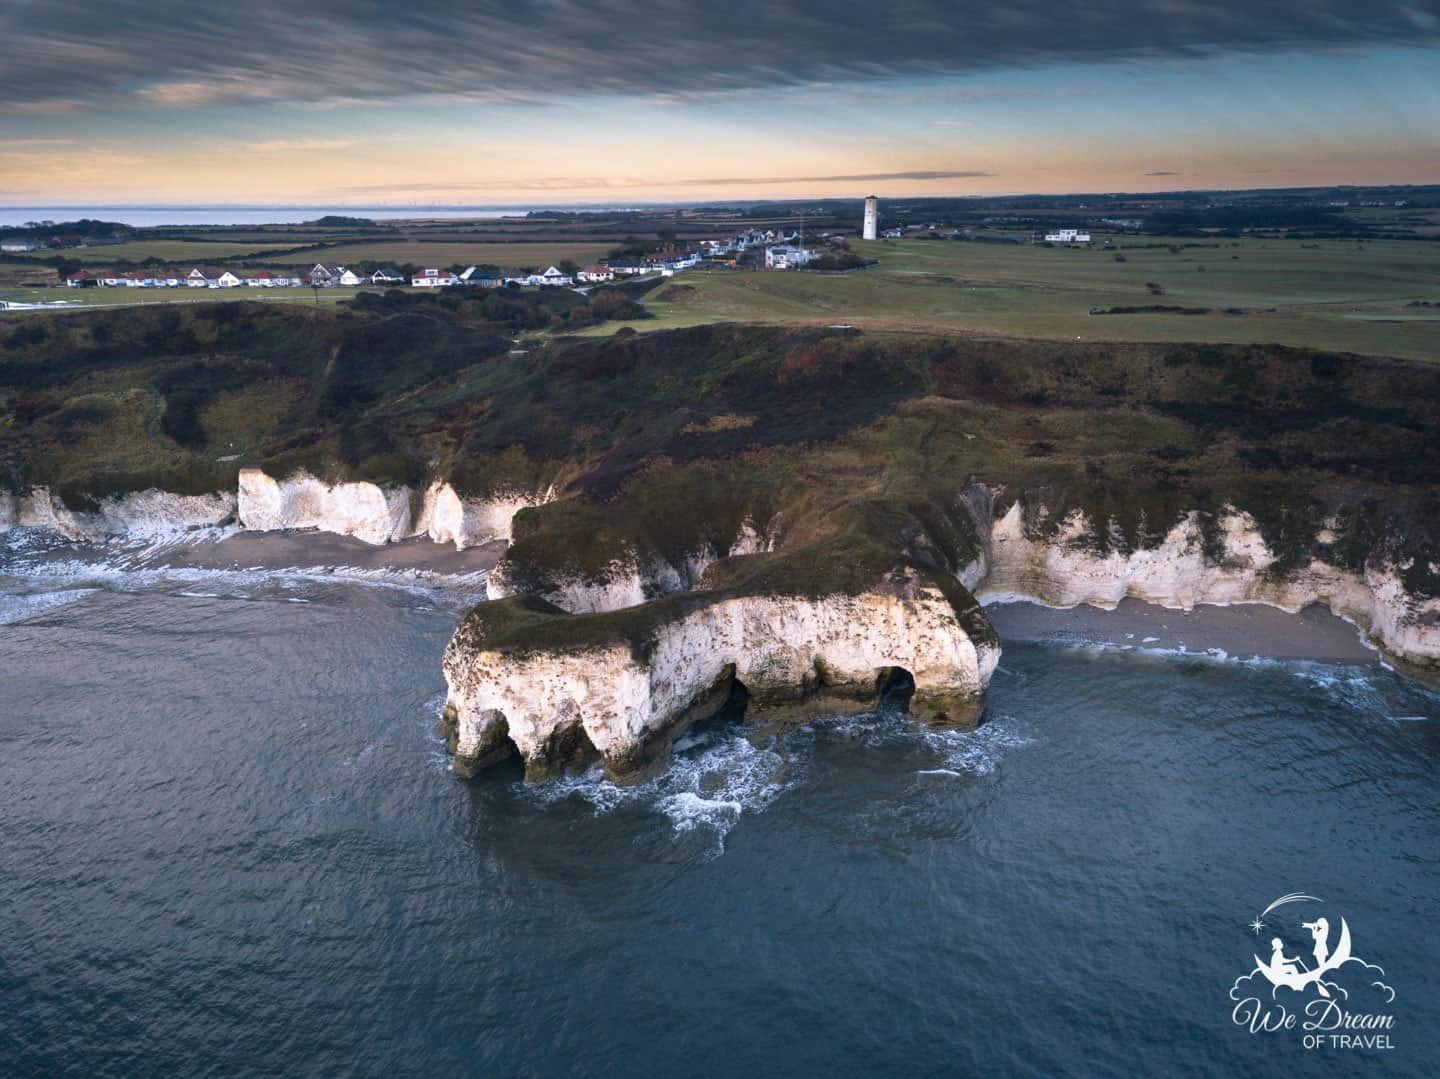 Aerial photograph of Flamborough Cliffs Yorkshire from a drone